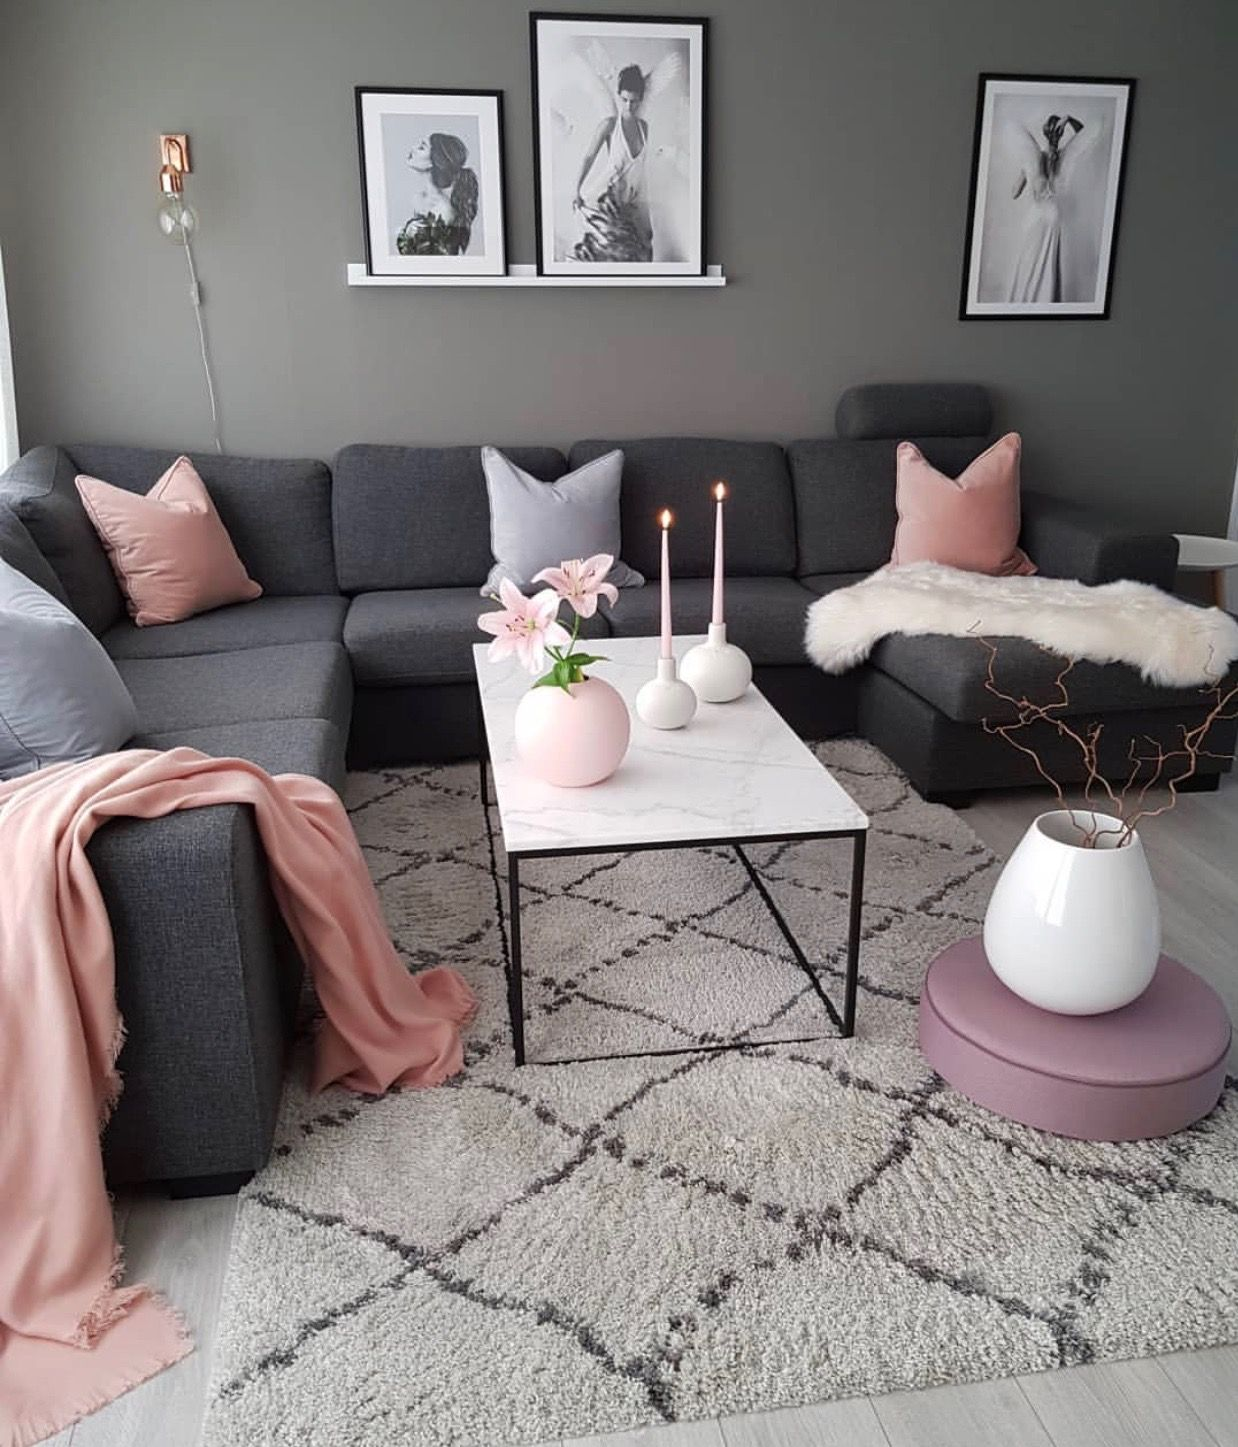 Pin By Sibel Ayas On Home Work Small Living Room Decor Living Room Decor Apartment Living Room Decor Inspiration